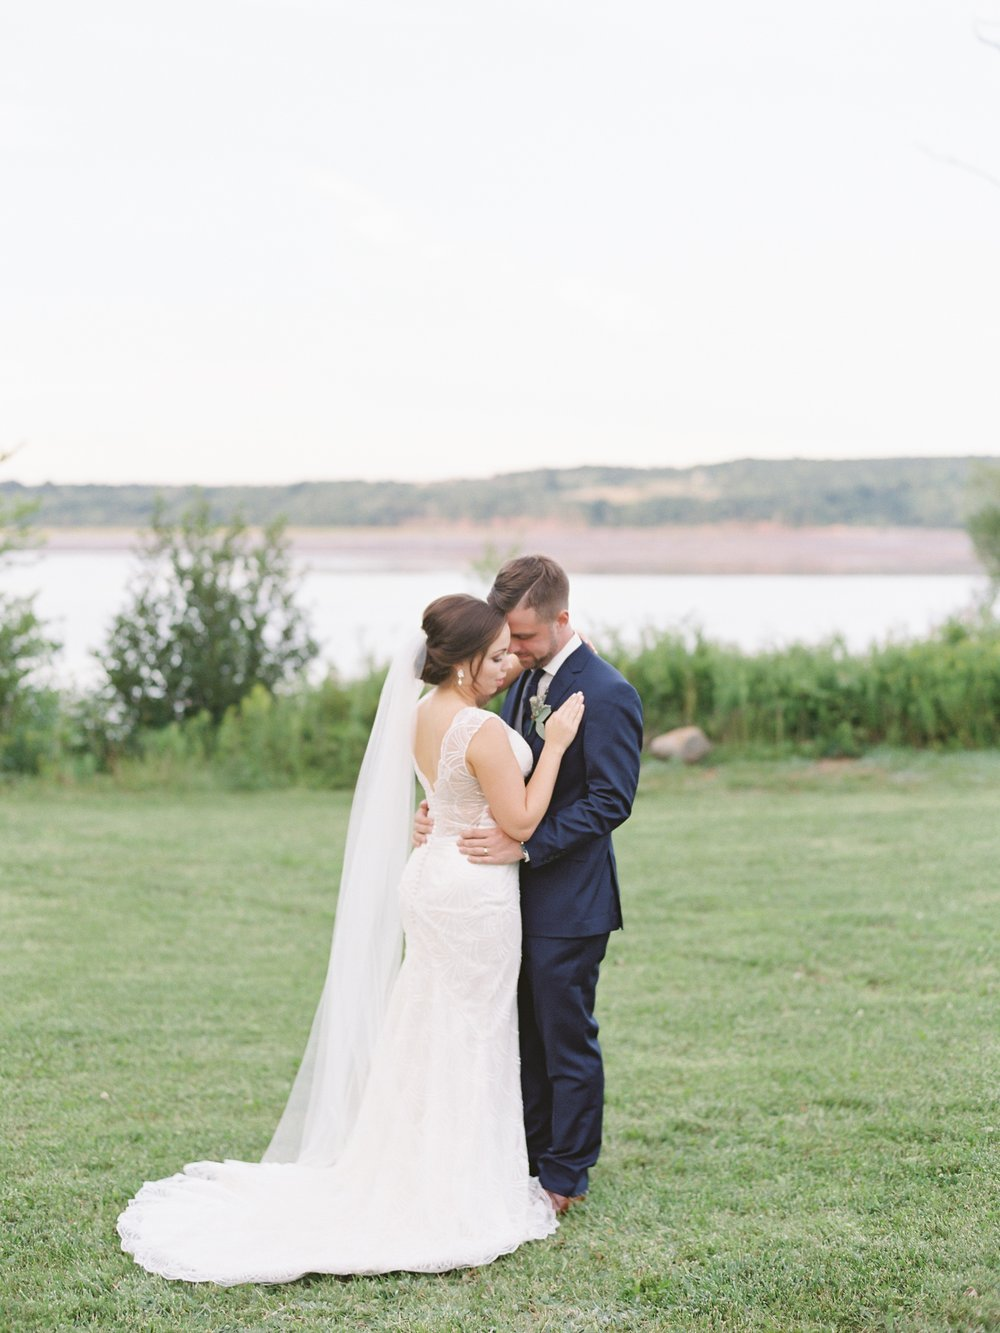 LAUREN + JAMES - Private Estate, Nova Scotia